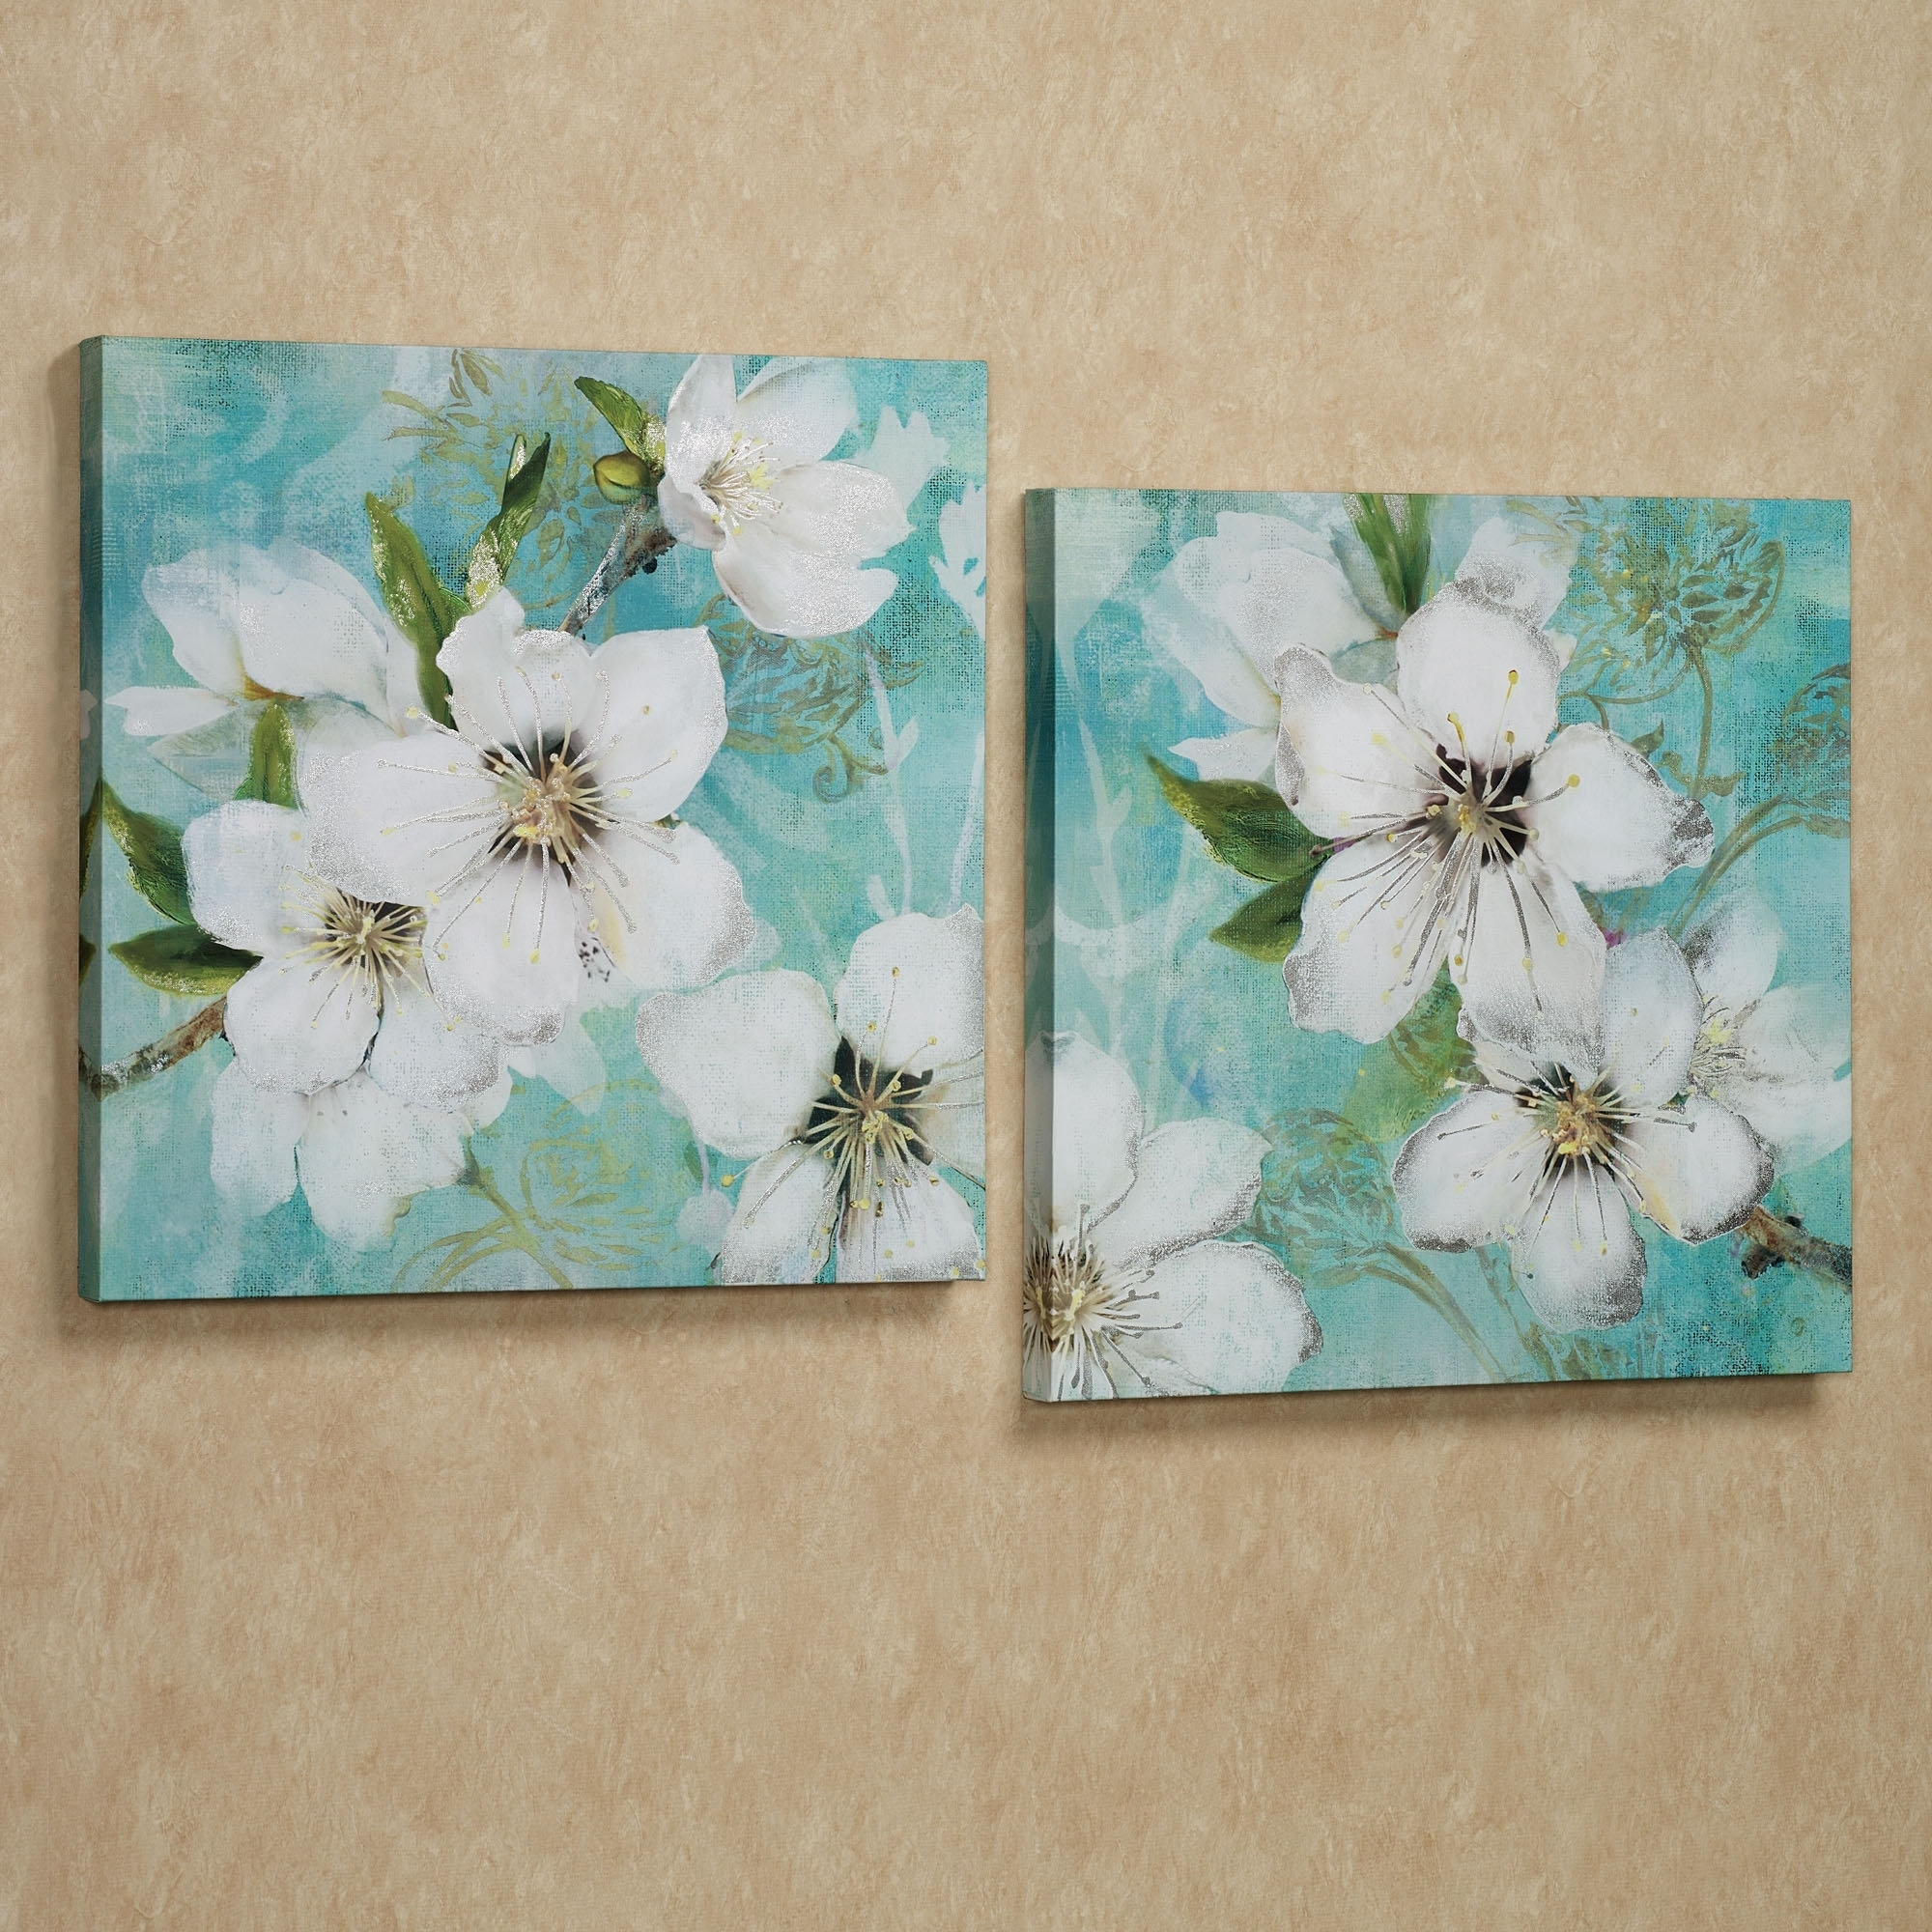 Wall Art Ideas : Flowers Bloom Giclee Wall Art Canvas White Set Intended For Current Embellished Canvas Wall Art (View 10 of 15)